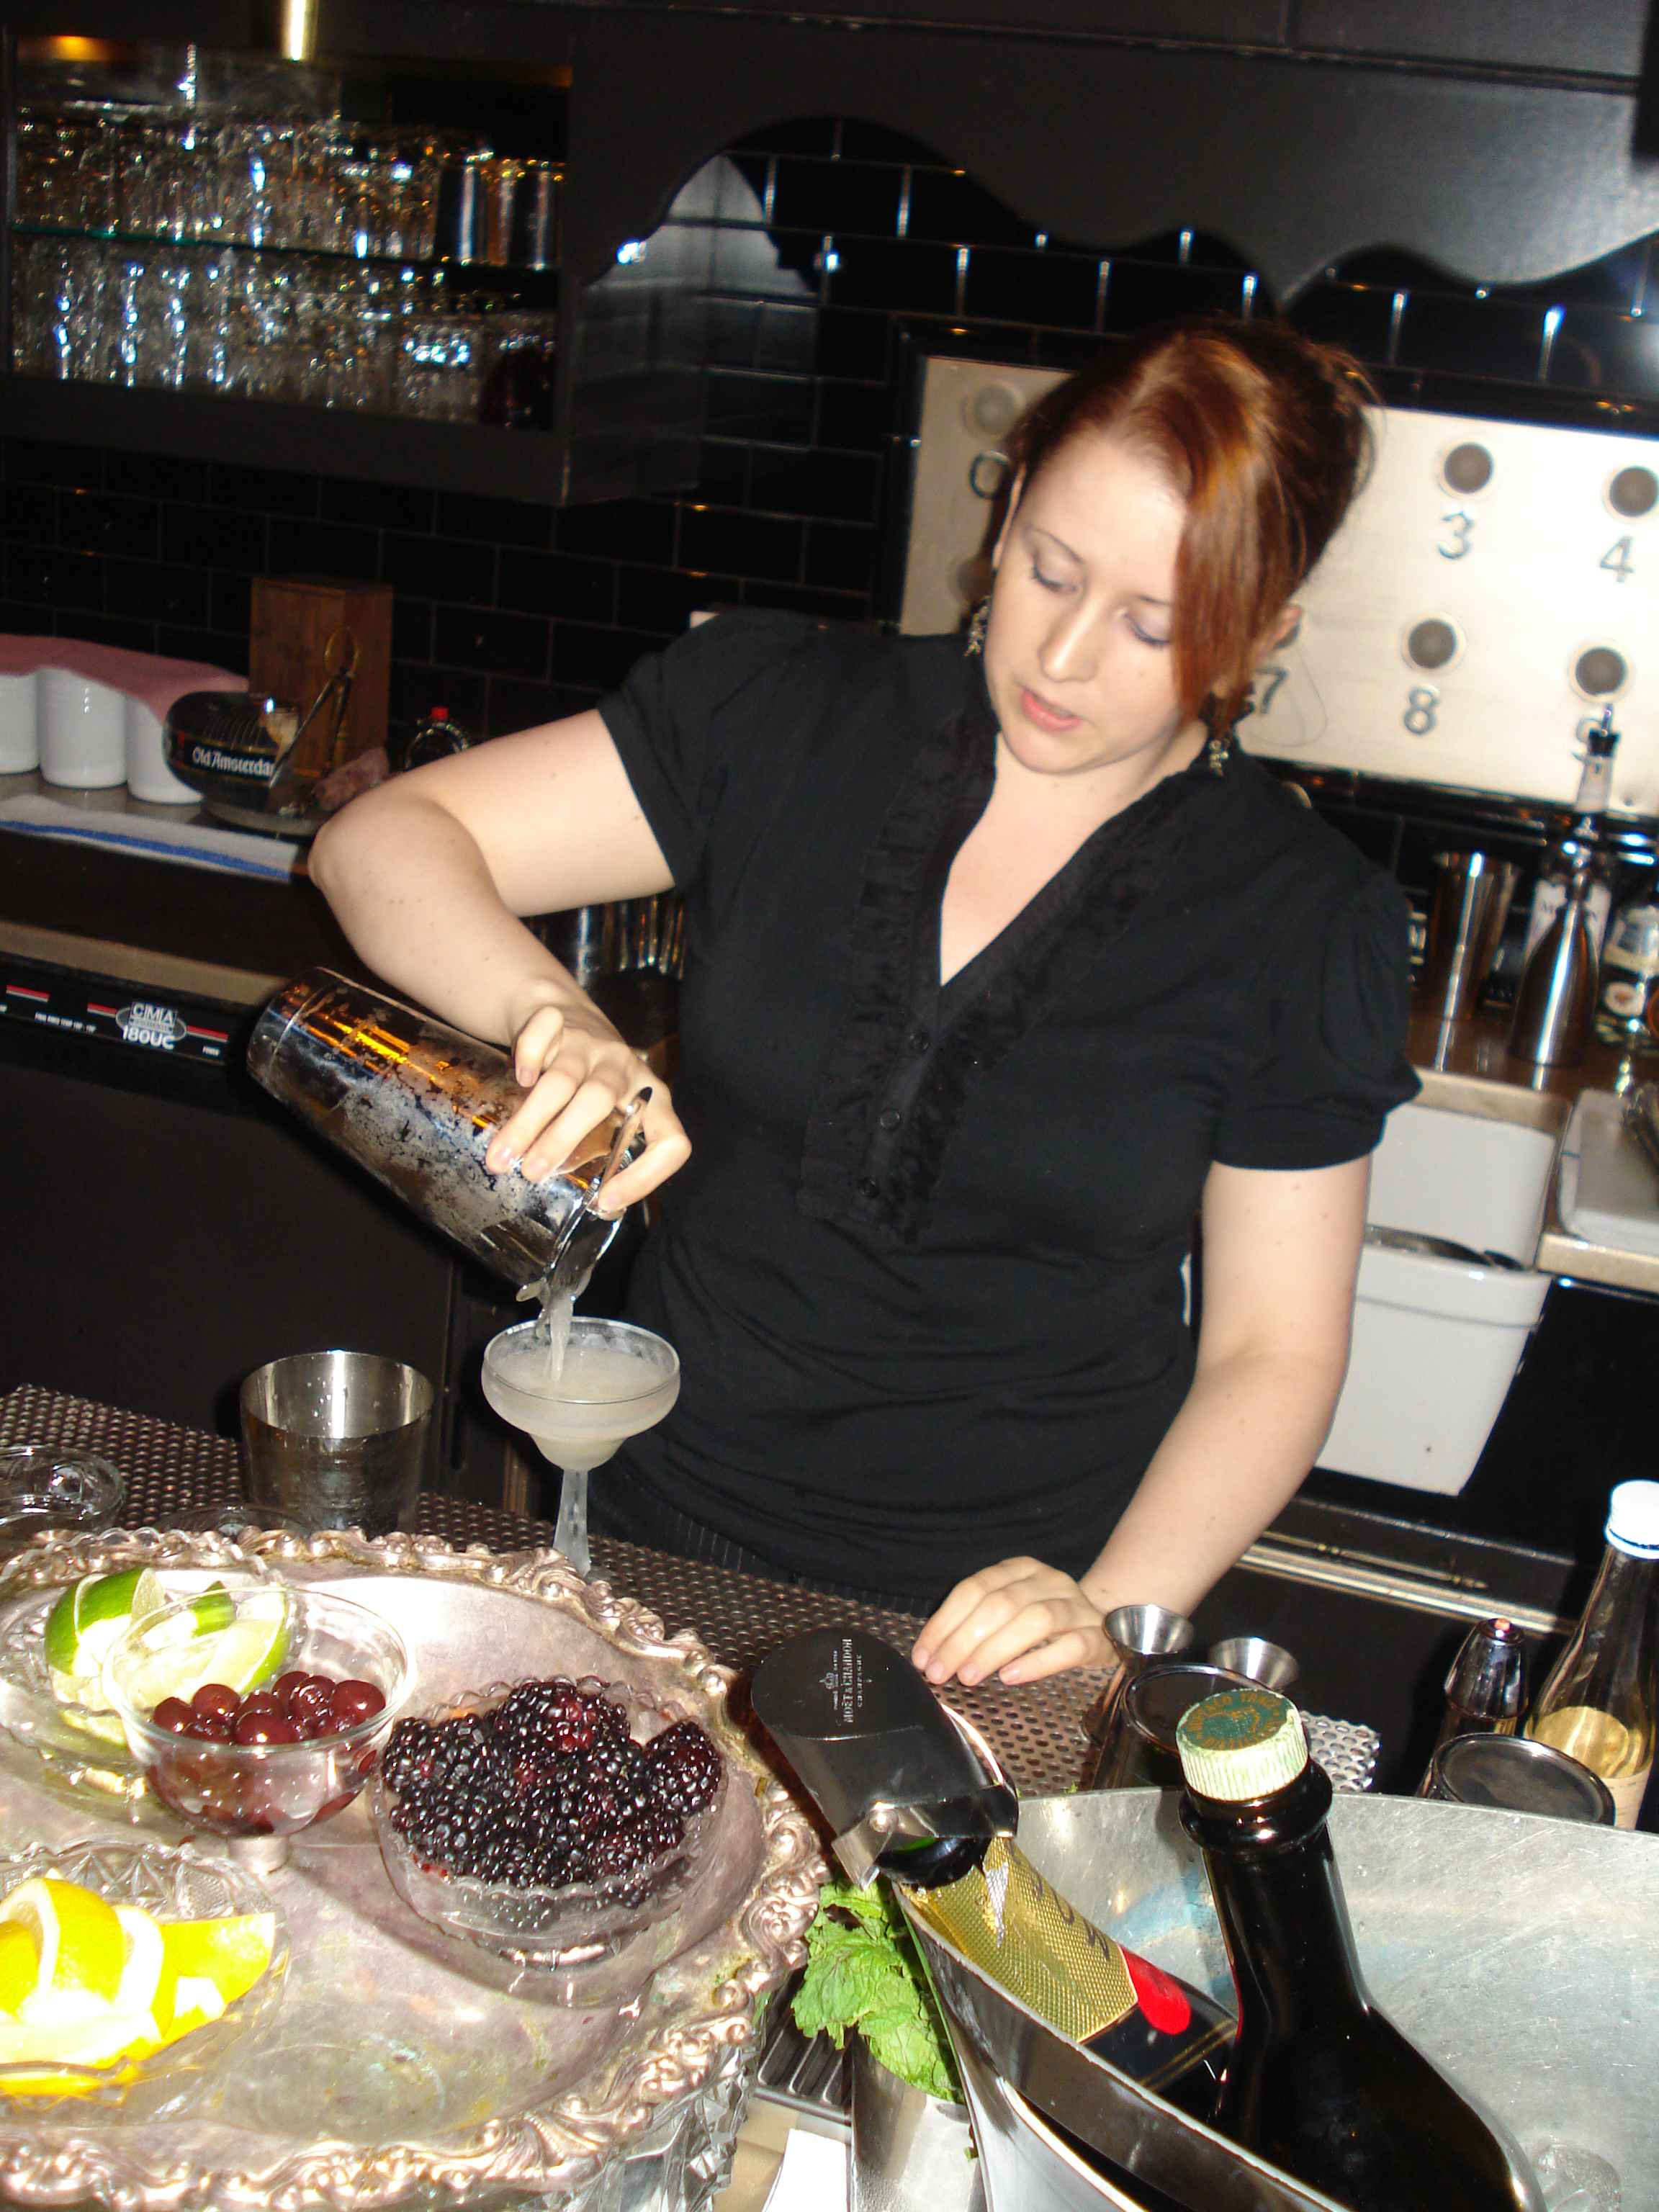 Meaghan Dorman, head bartender at Raines Law Room and founding member of LUPEC NYC